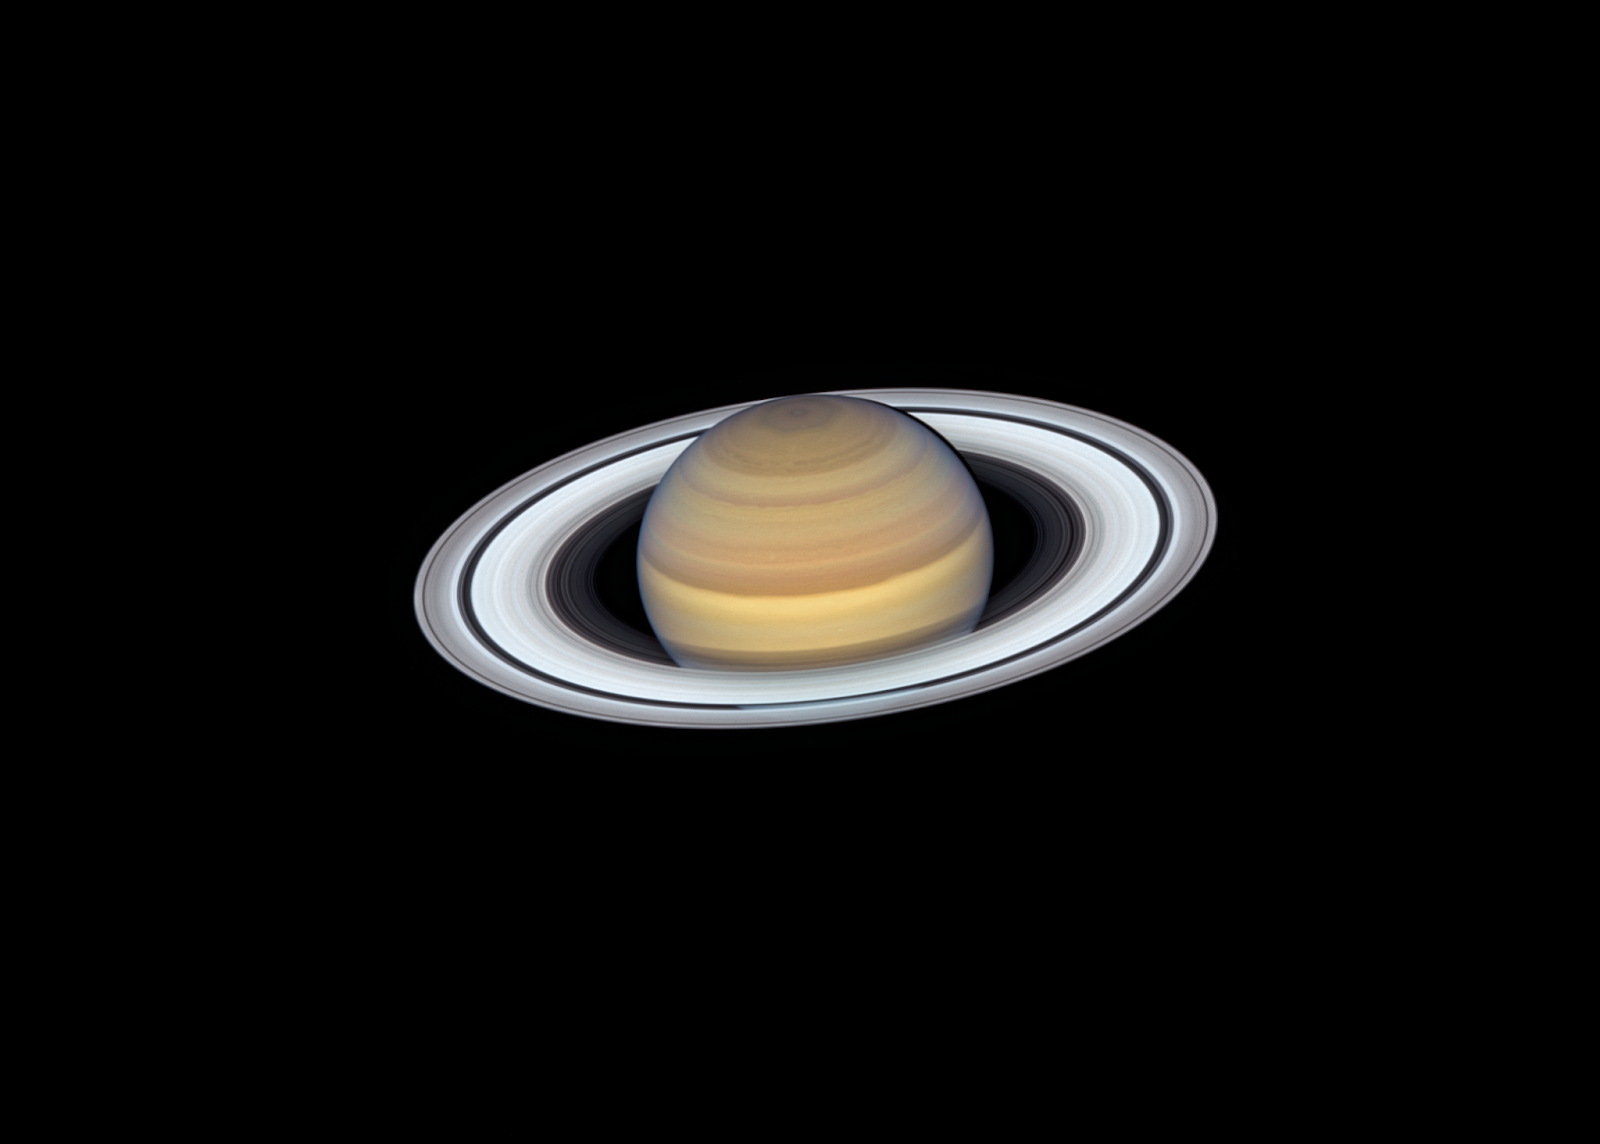 Gorgeous Saturn Shines in New Hubble Portrait